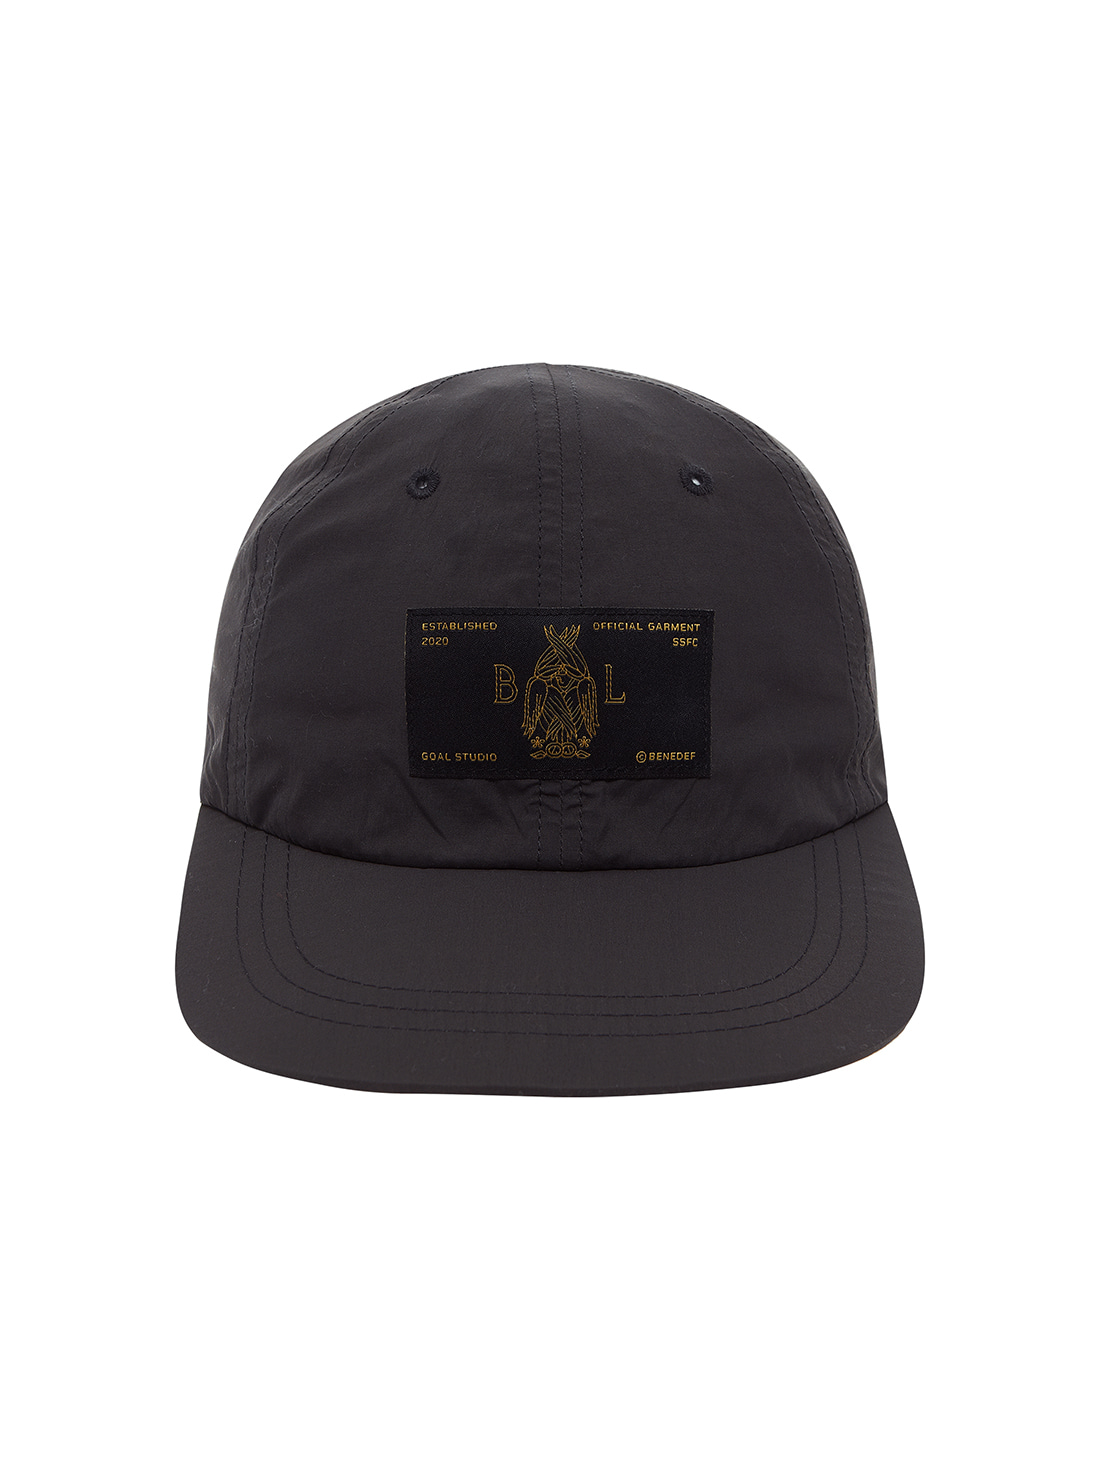 GOALSTUDIO SSFC BALL CAP - CHARCOAL